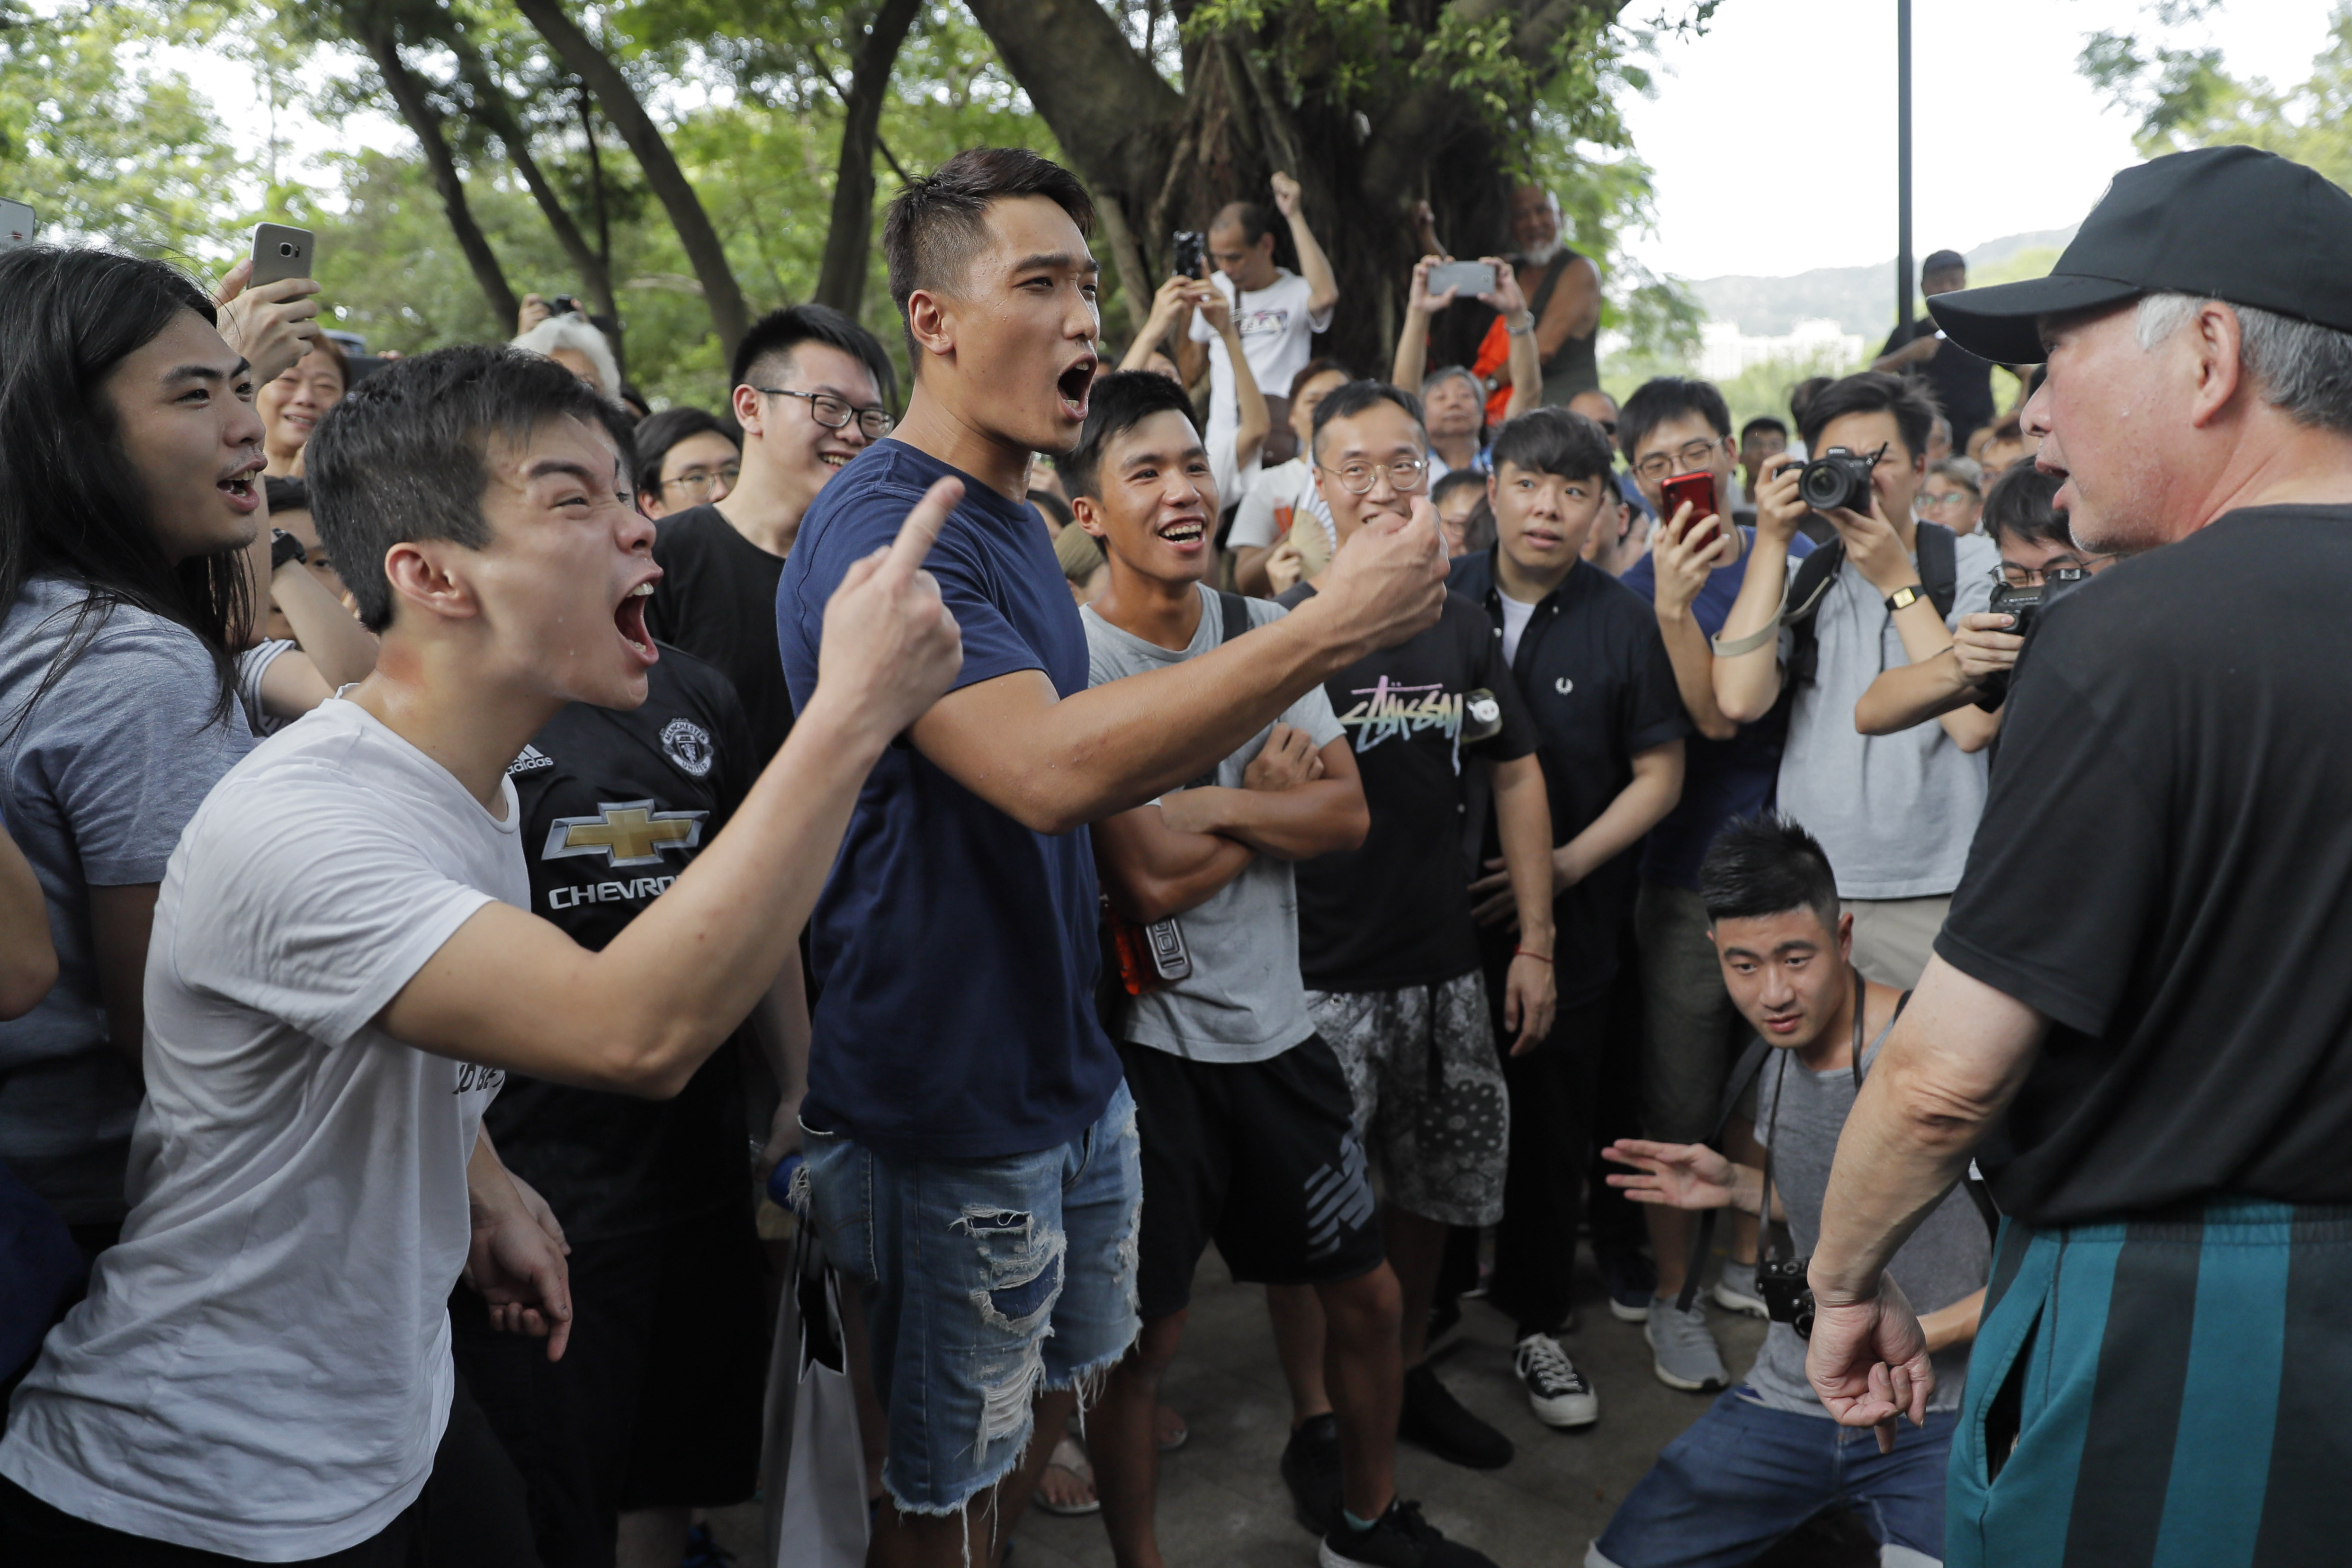 Hong Kong protesters hold vigil ahead of Sunday march